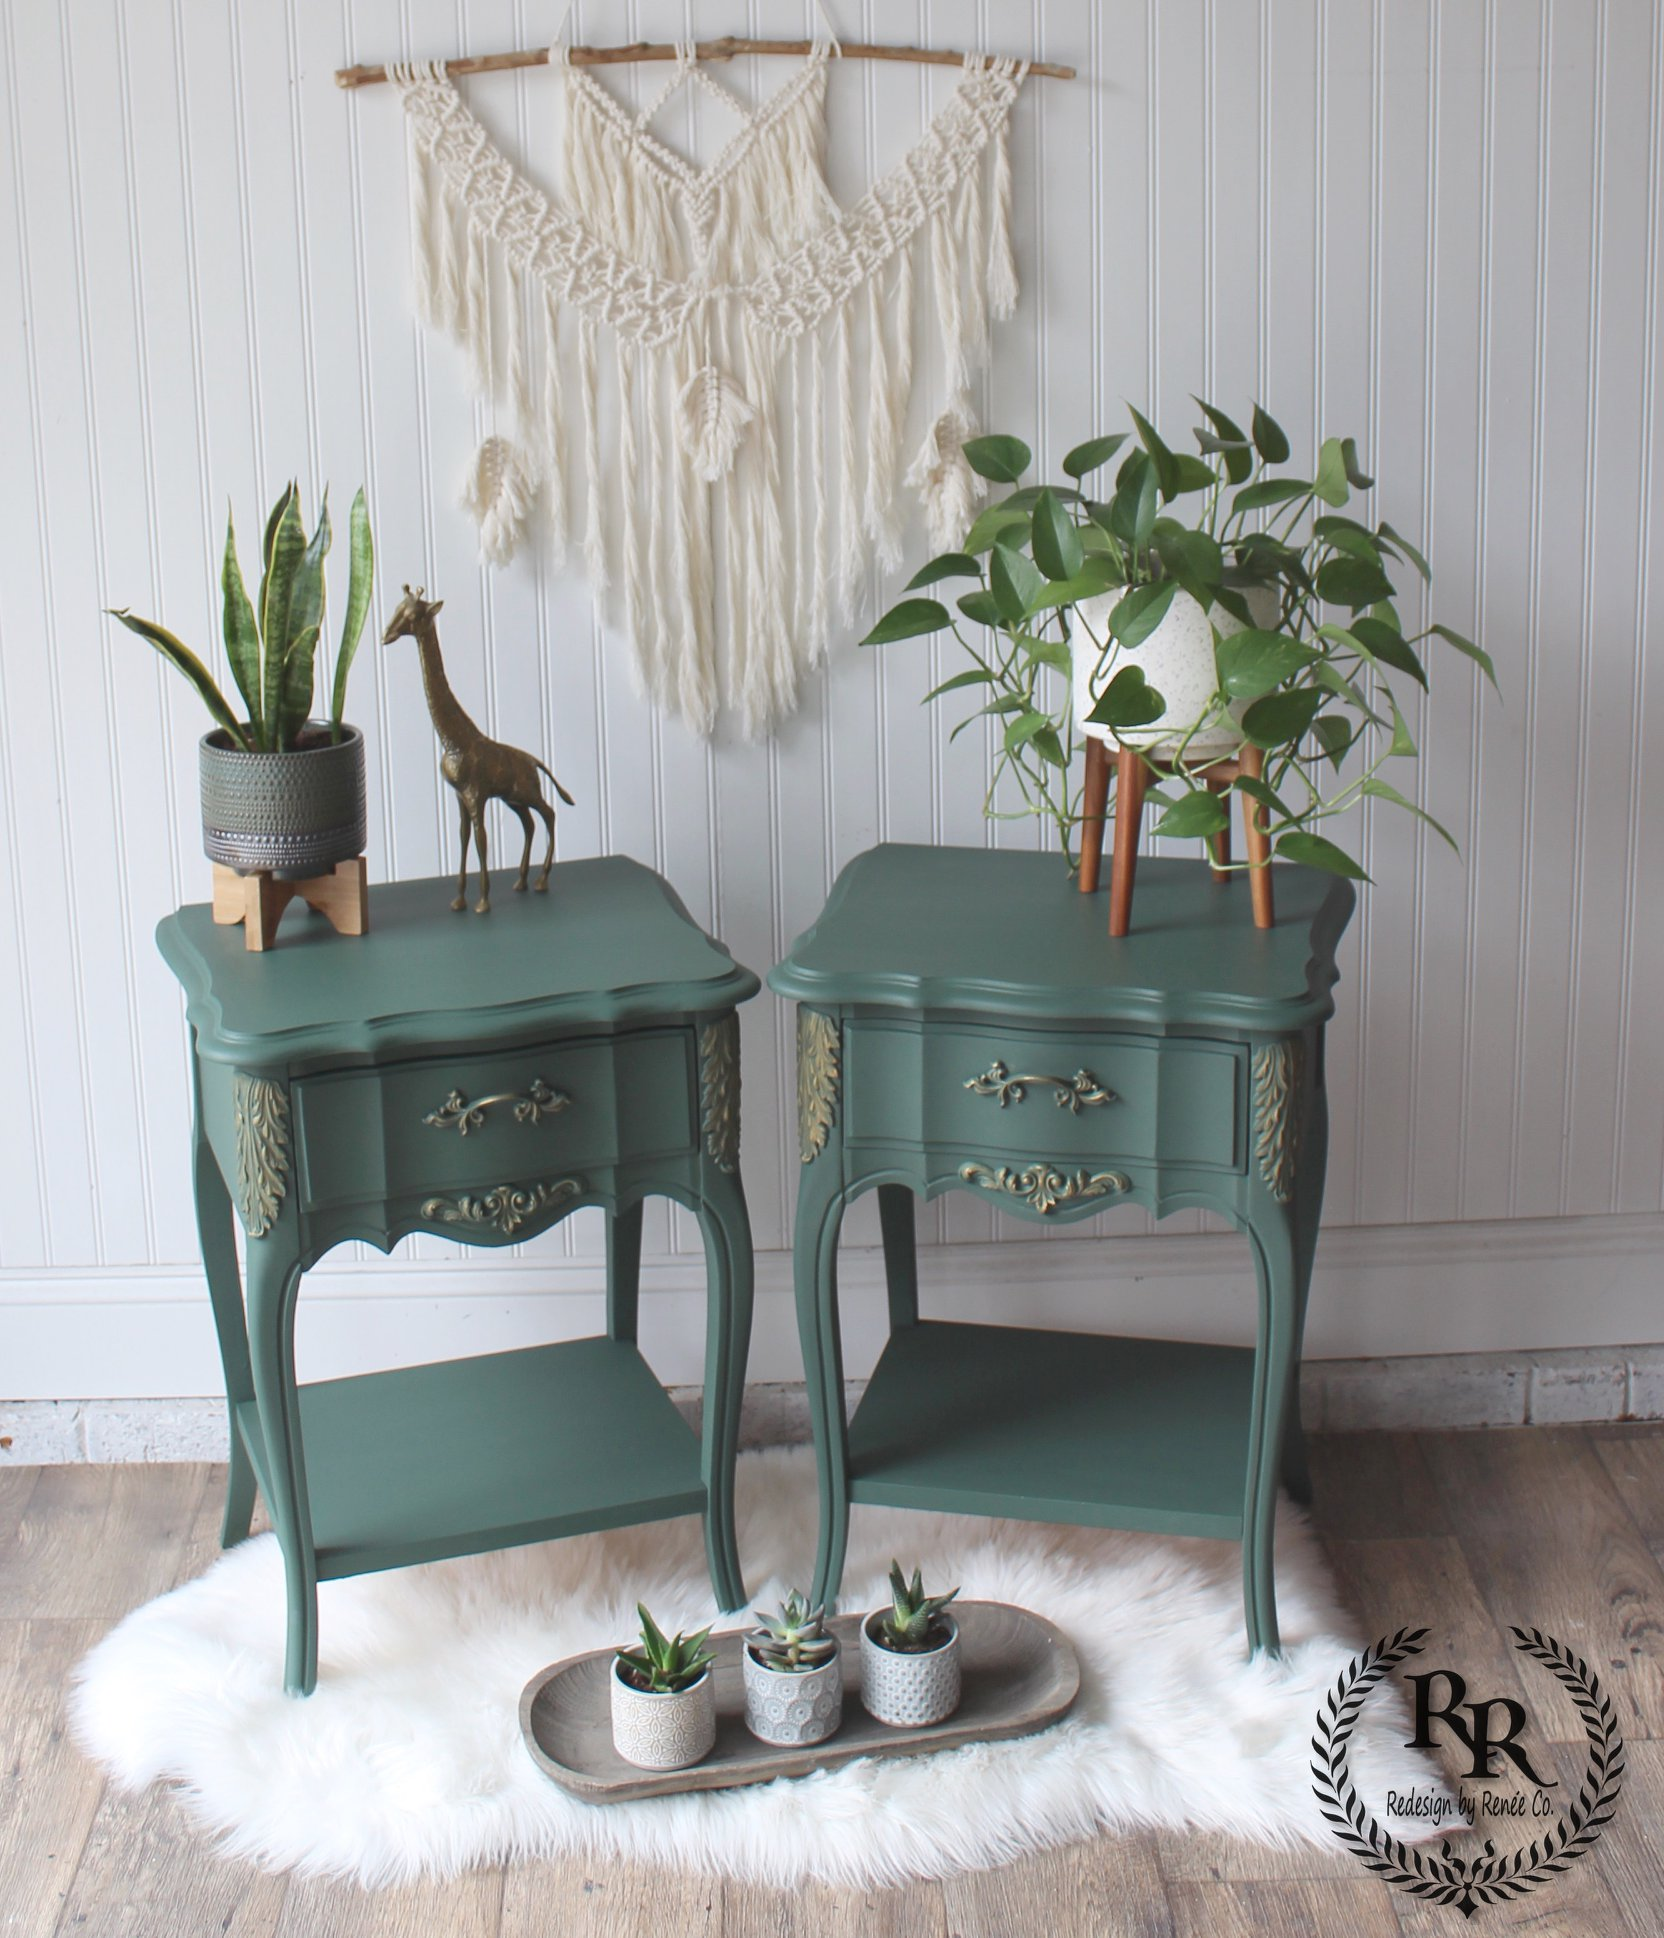 Decorative Tables in Hollow Hill with Gold Wax